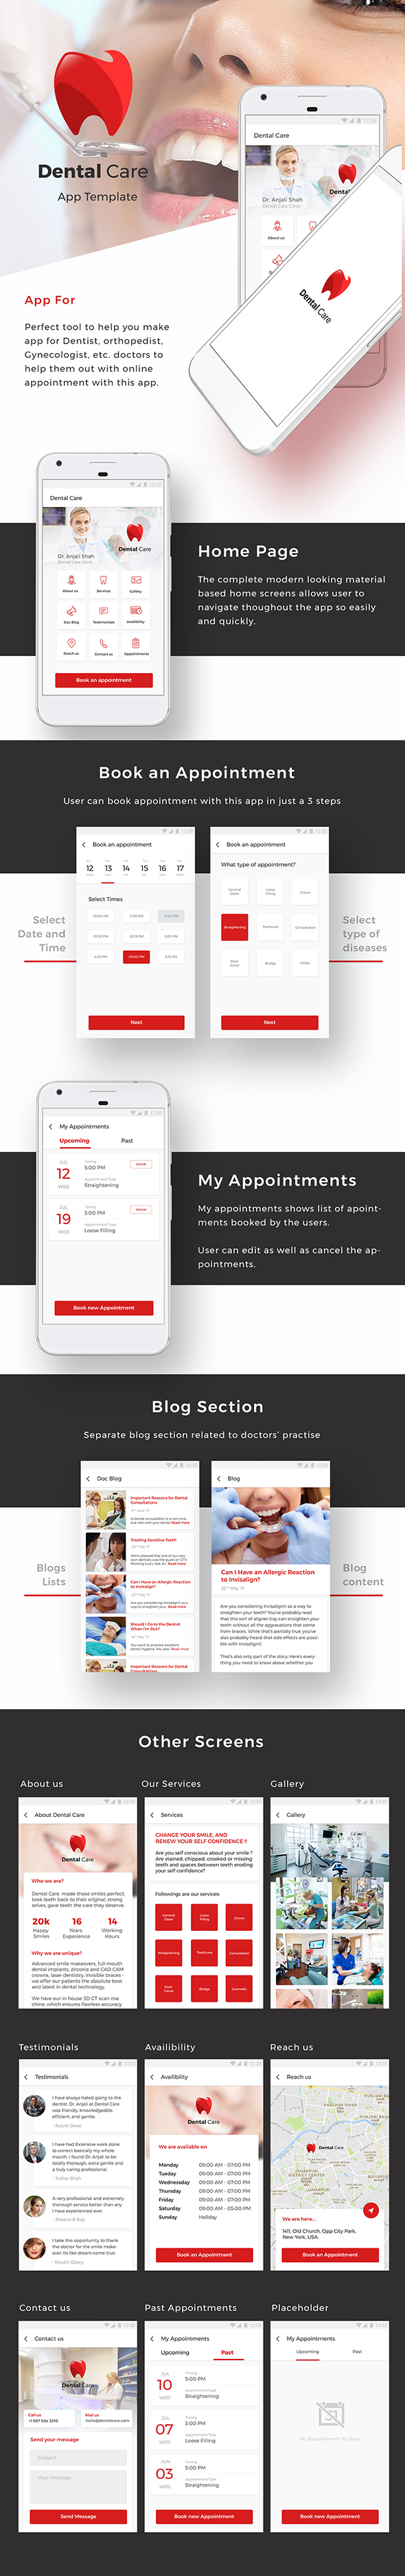 Doctors Appointment booking Android app and doctor Appointment iOS App Template | IONIC 3 - 2 Doctors Appointment booking Android app and doctor Appointment iOS App Template | IONIC 3 Nulled Free Download Dentist 20presentation1